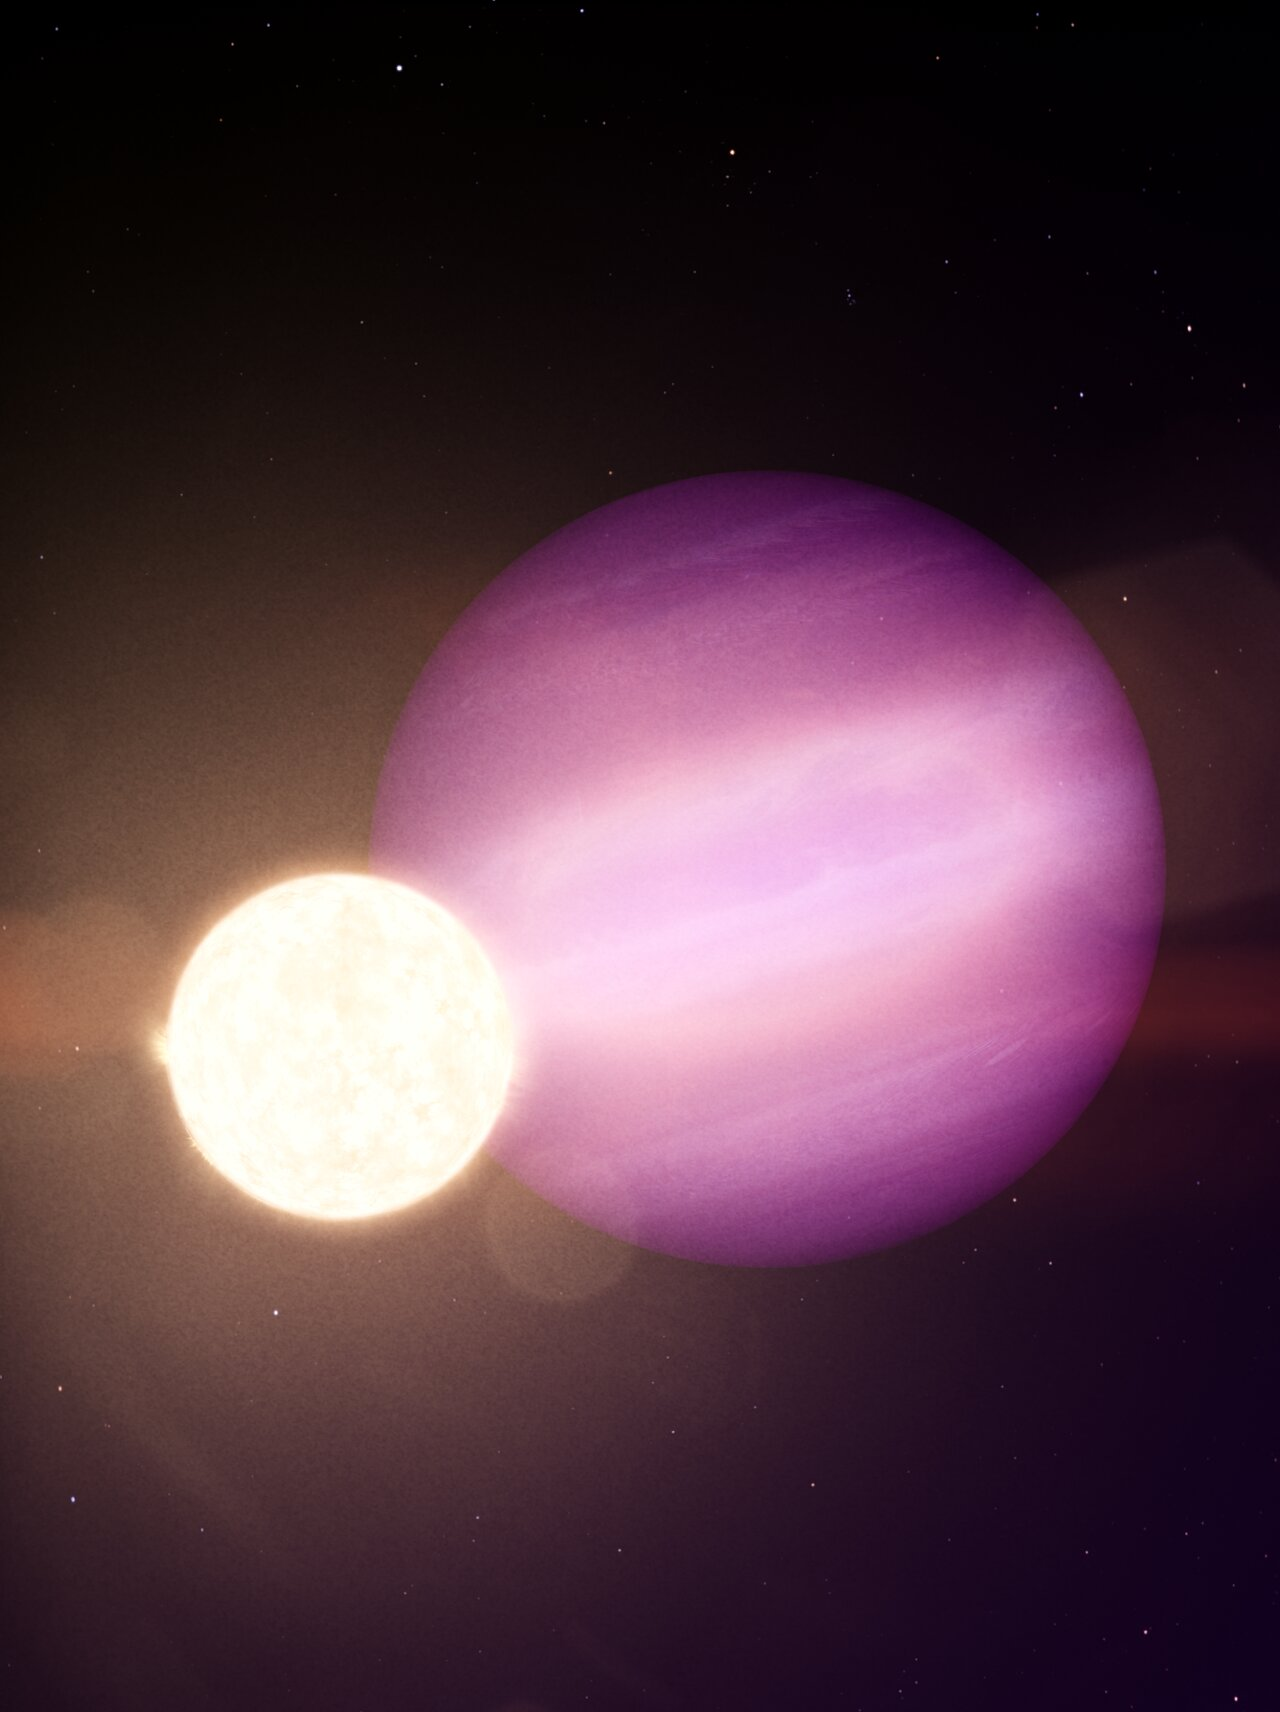 20200923.Astronomers-Discover-First-Known-Planet-to-Orbit-a-White-Dwarf-Star-01.jpg